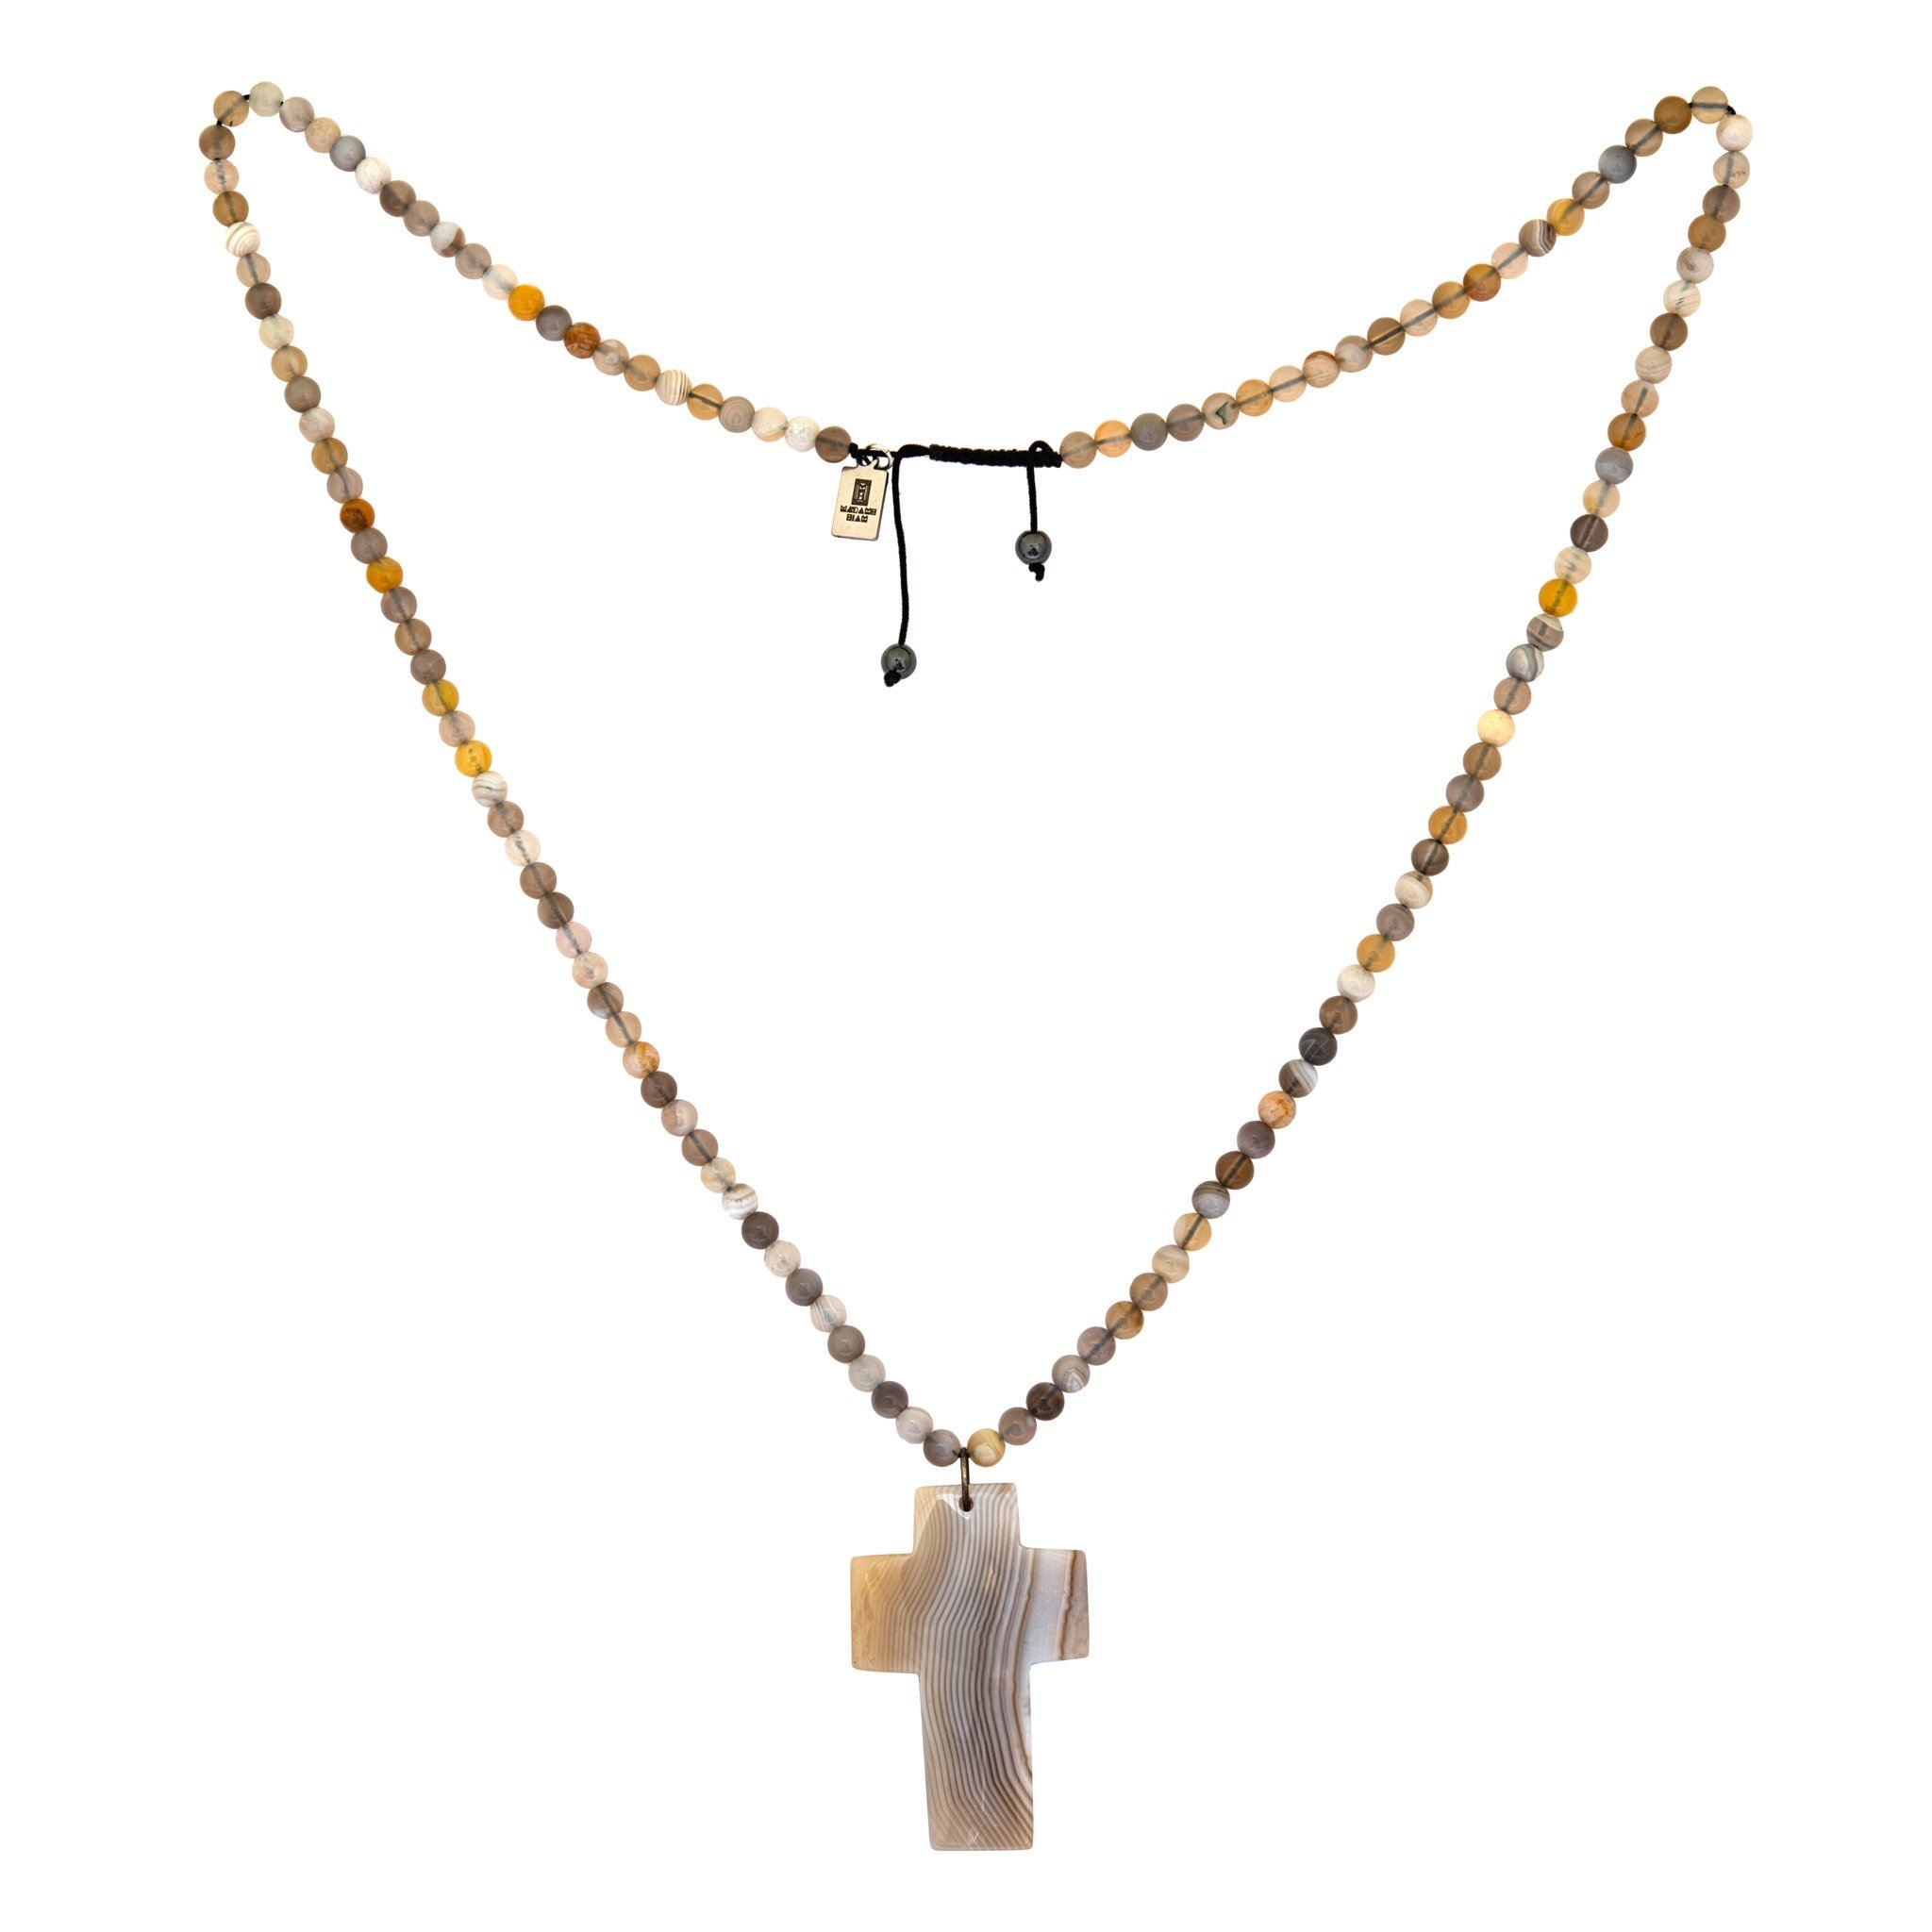 BAHIA grey agate cross necklace - MadamSiam